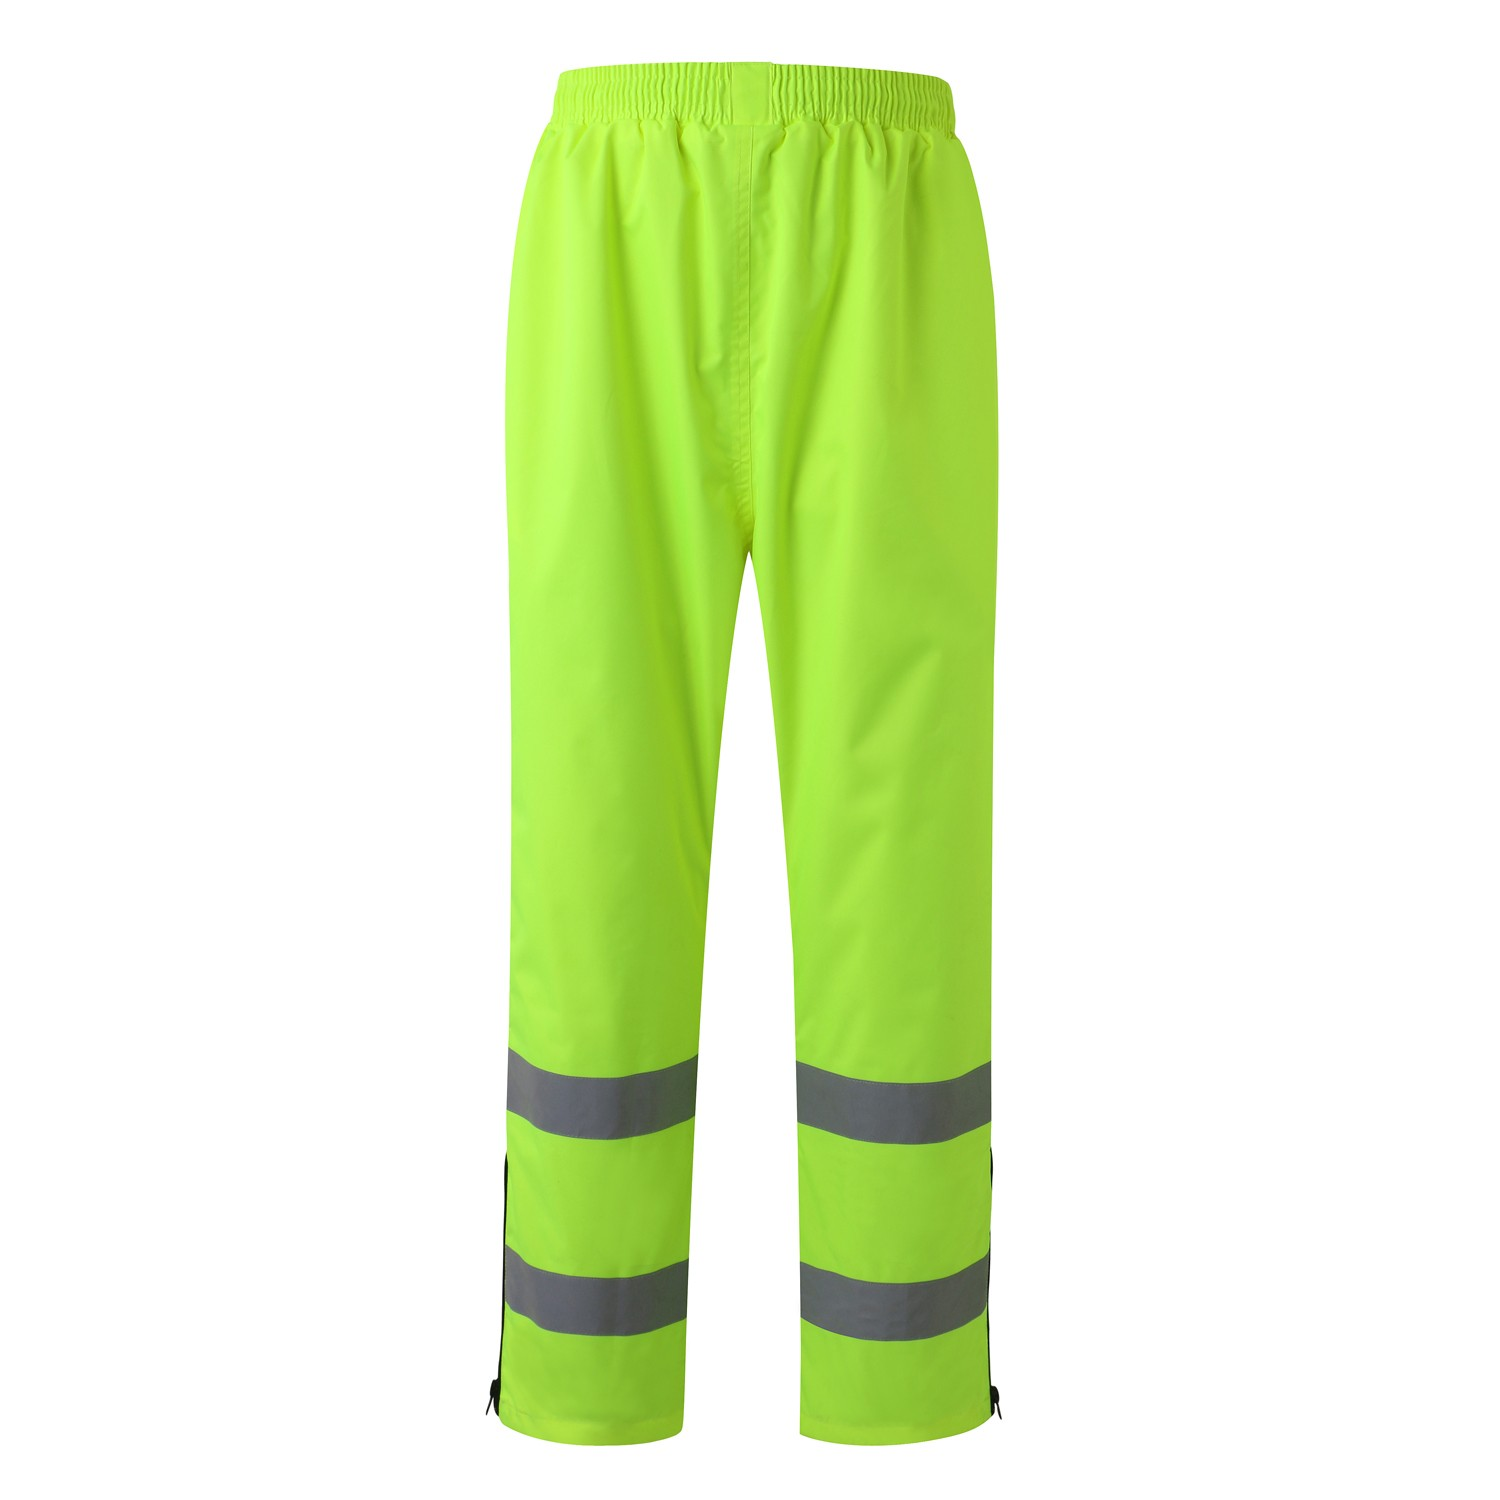 Reflective Rain Pants Safety Windproof Waterproof Pants Outdoor Traffic Sanitation Garden Overalls Rain Pants